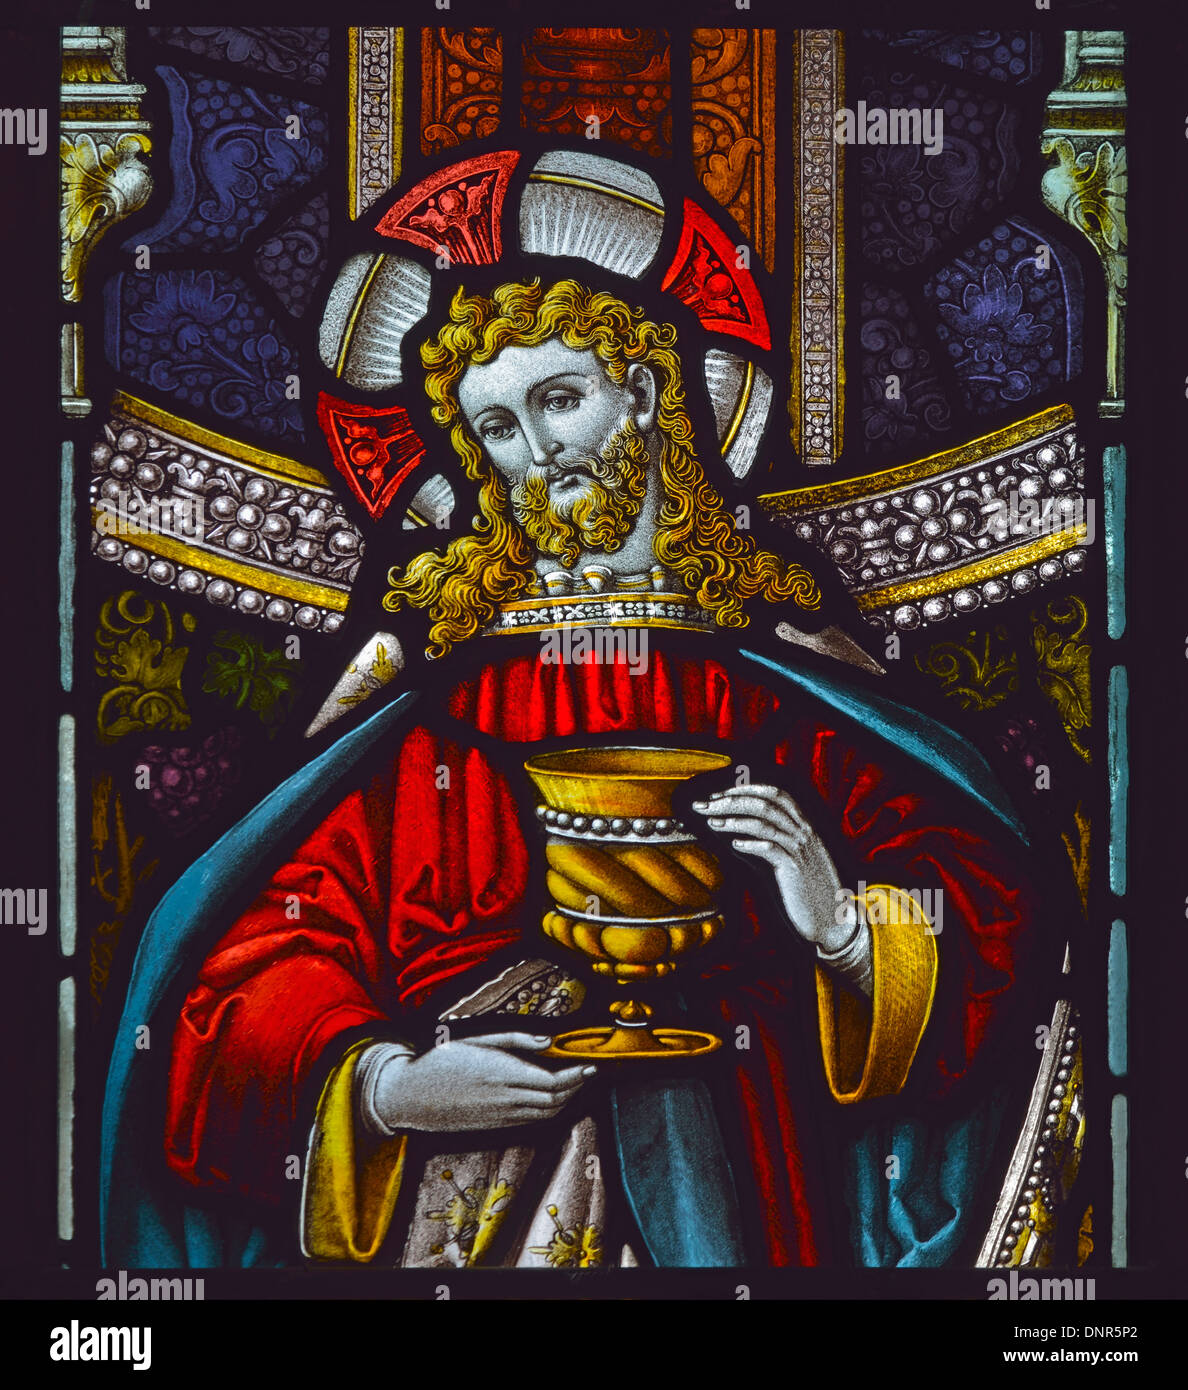 Christ with chalice. Detail of window. Church of Saint Michael. Burgh-by-Sands, Cumbria, England, United Kingdom, Europe. - Stock Image